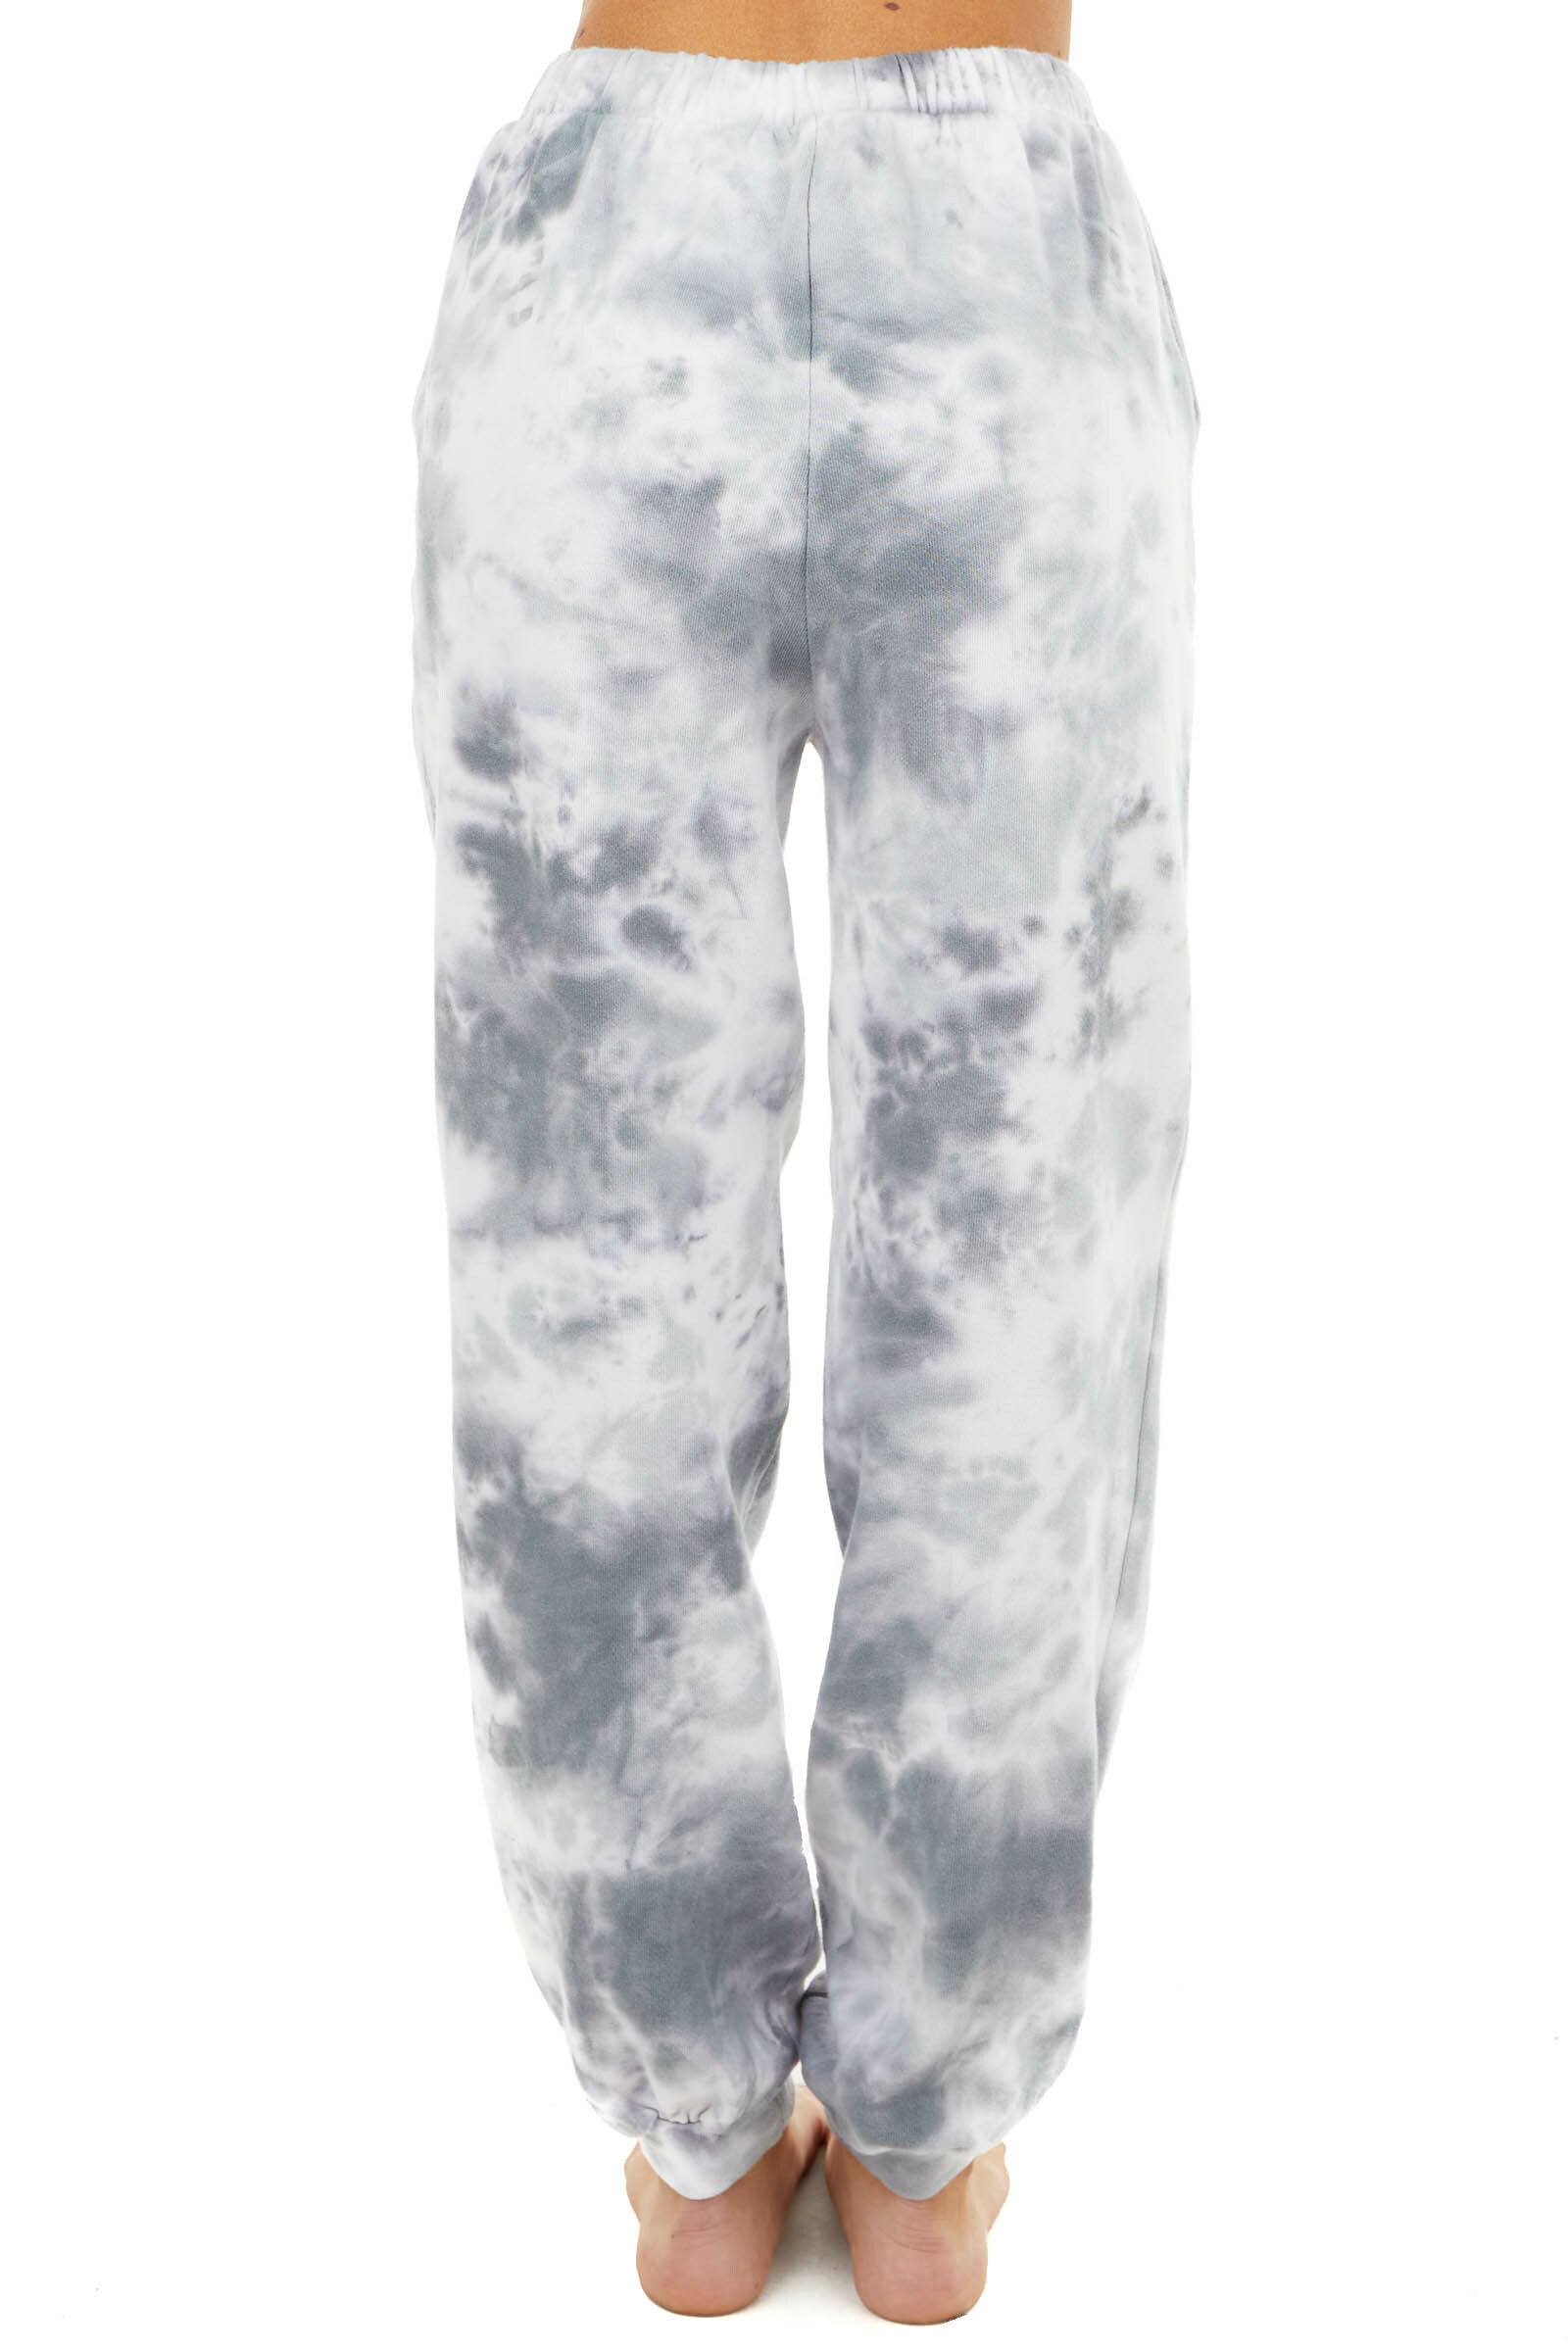 Charcoal and Ivory Tie Dye Print Joggers with Pockets